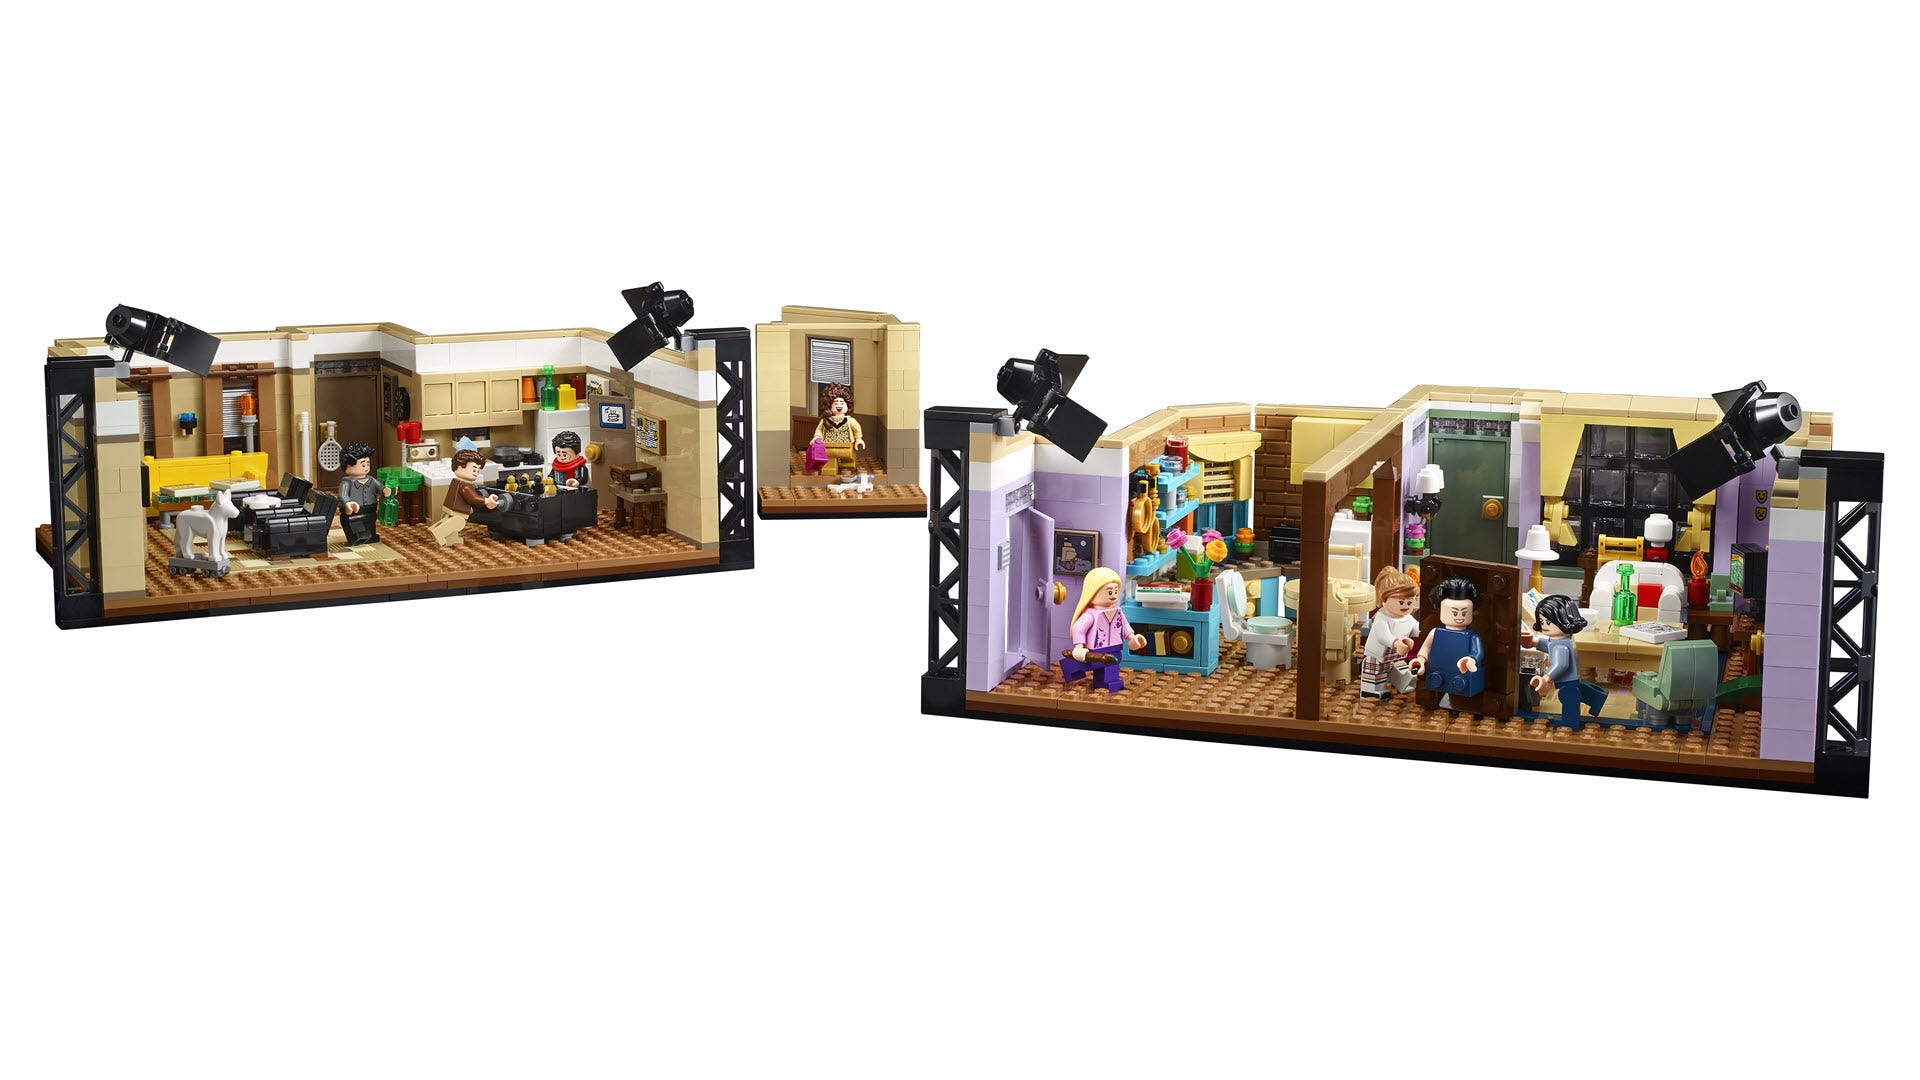 the LEGO apartment set, with an adjoining hallway.